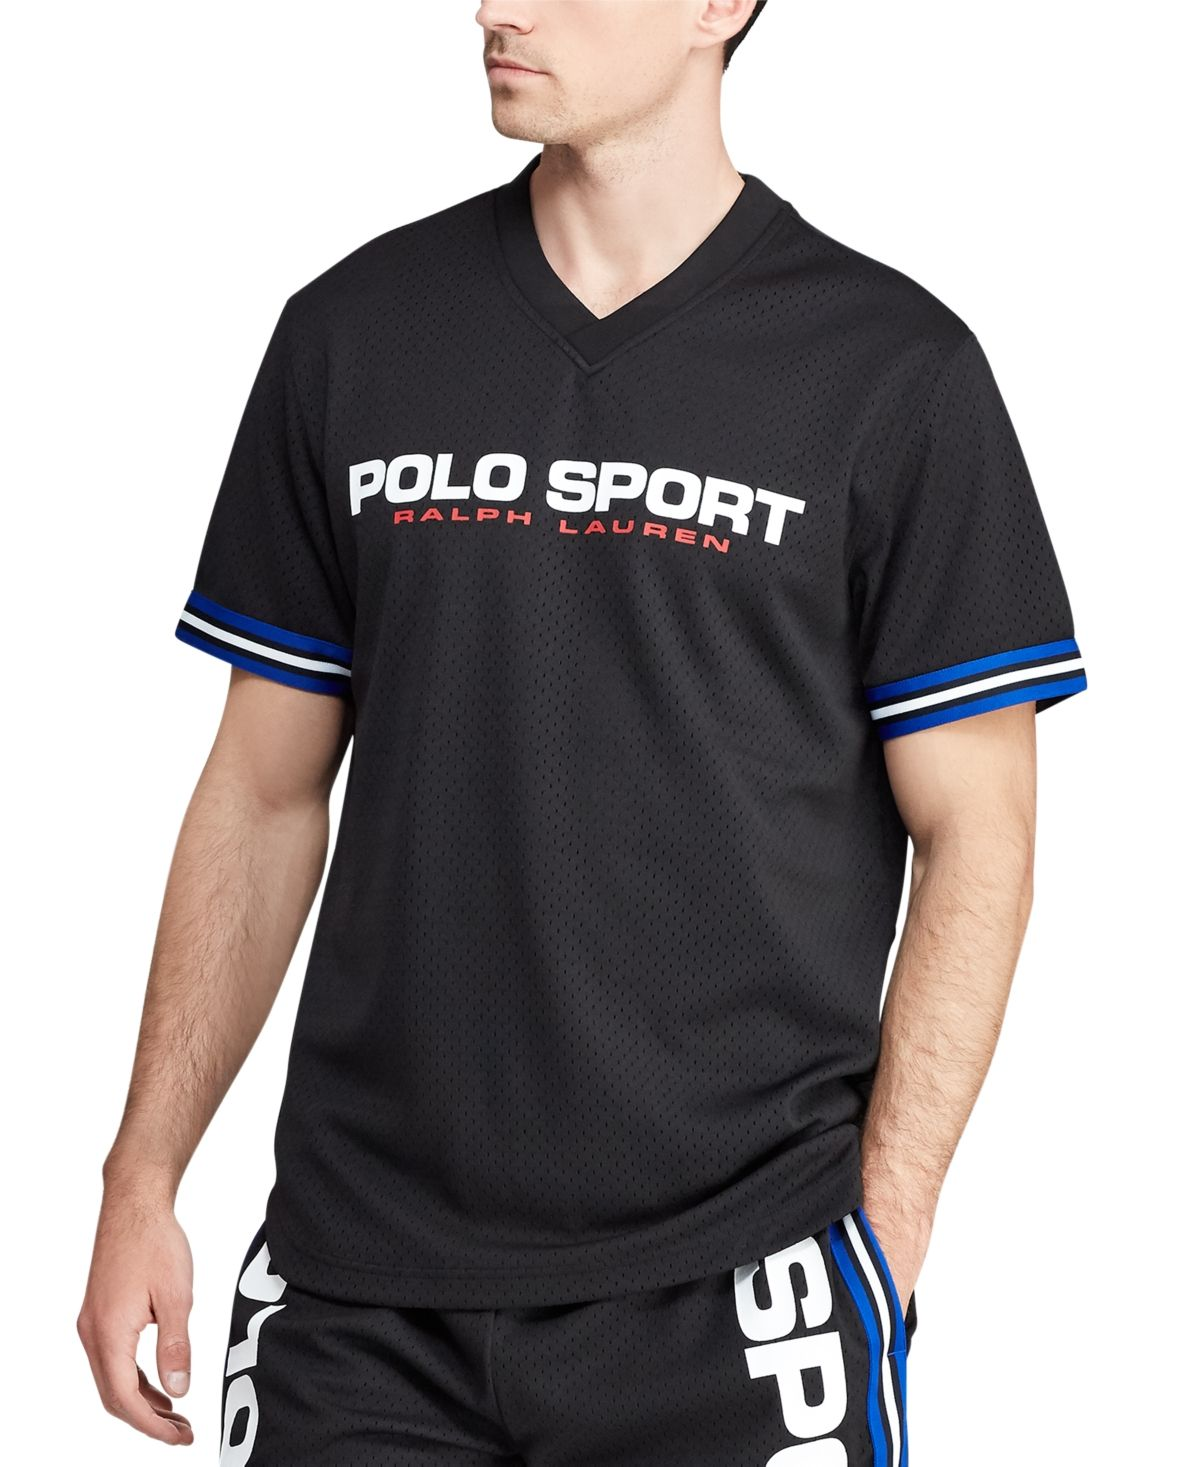 Ralph LAUREN POLO SPORT ThermoVent POLO-T-shirts